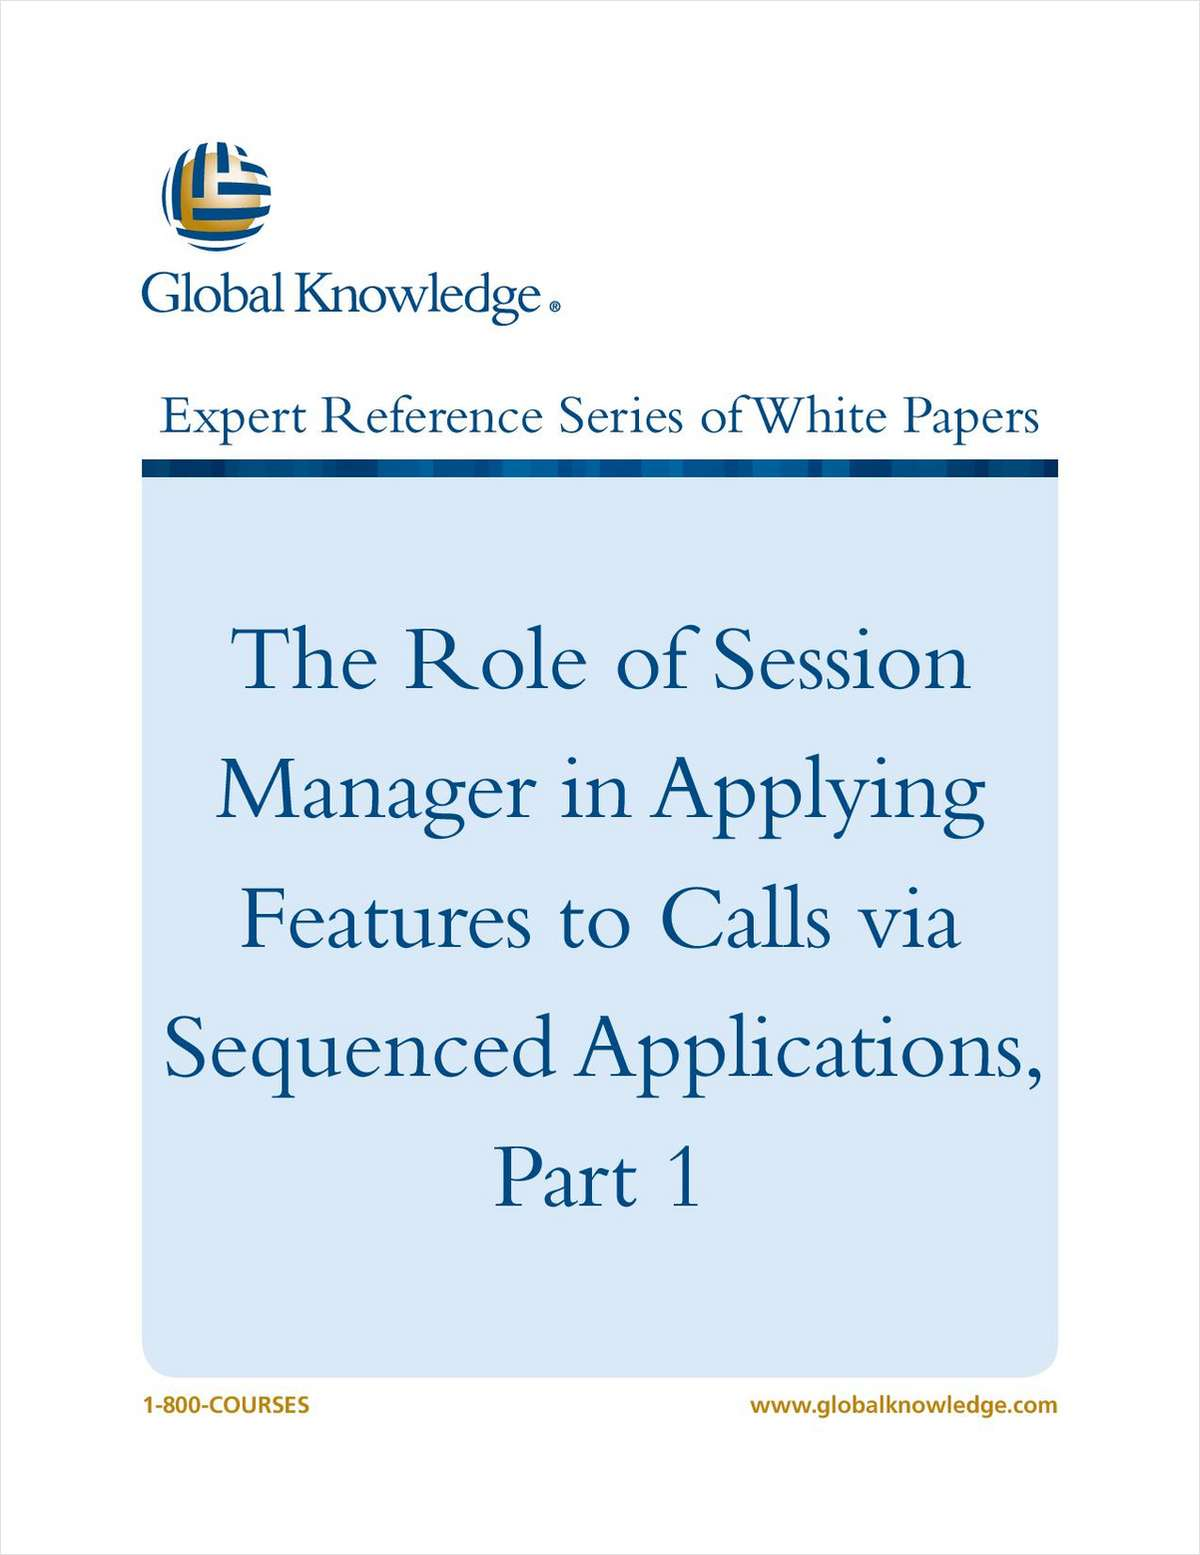 The Role of Session Manager in Applying Features to Calls via Sequenced Applications, Part 1